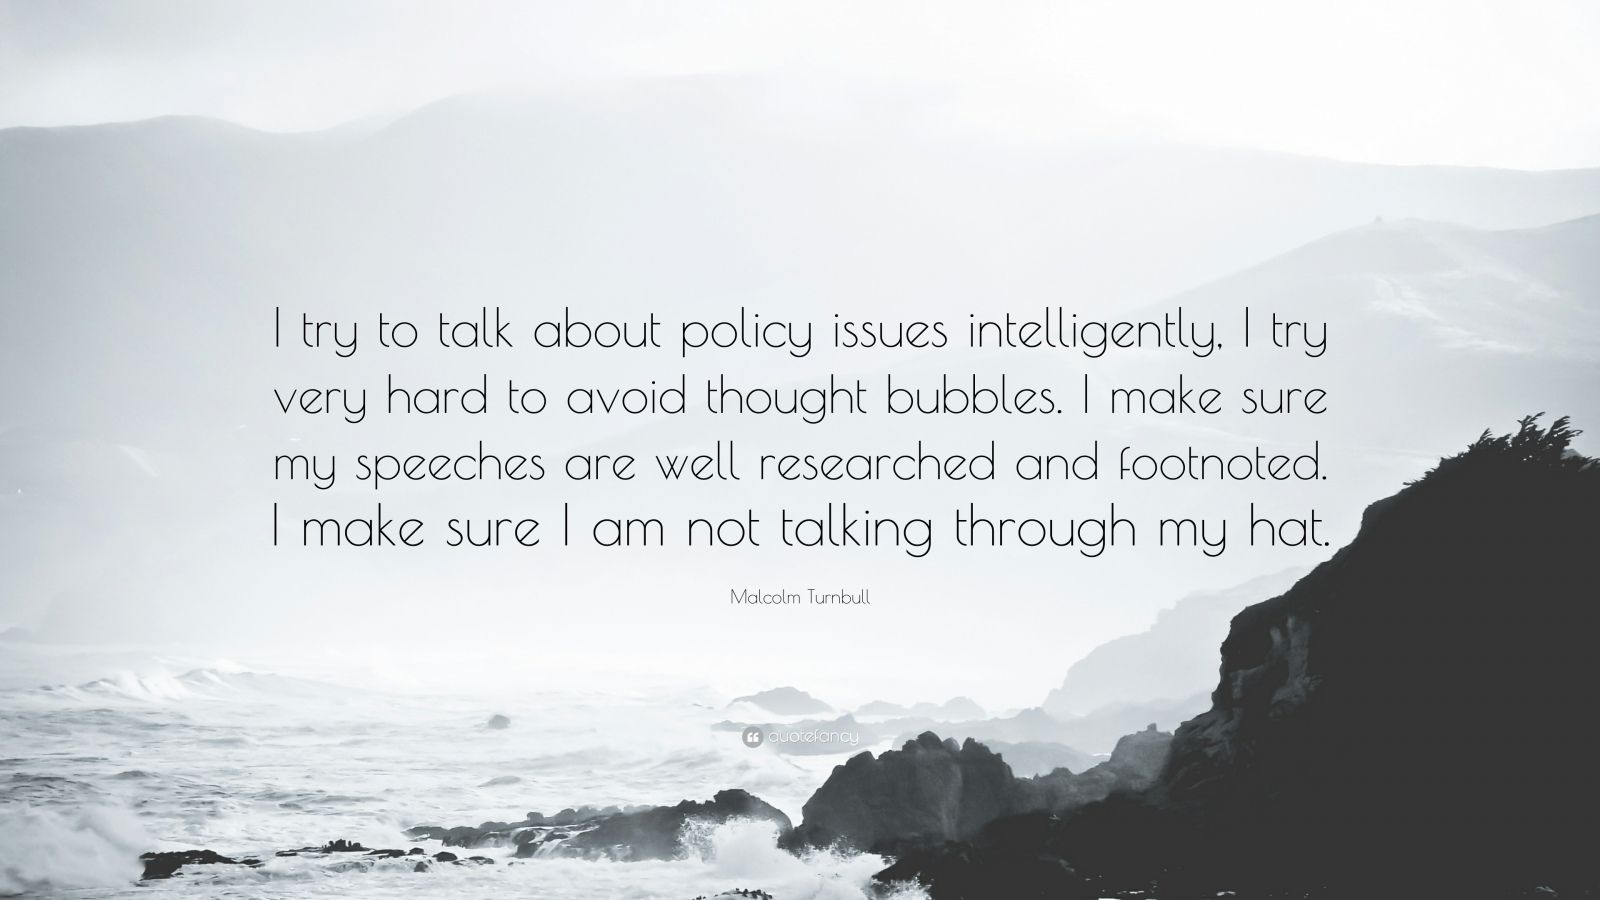 """Malcolm Turnbull Quote: """"I try to talk about policy issues intelligently, I try very hard to avoid thought bubbles. I make sure my speeches are well researched and footnoted. I make sure I am not talking through my hat."""""""